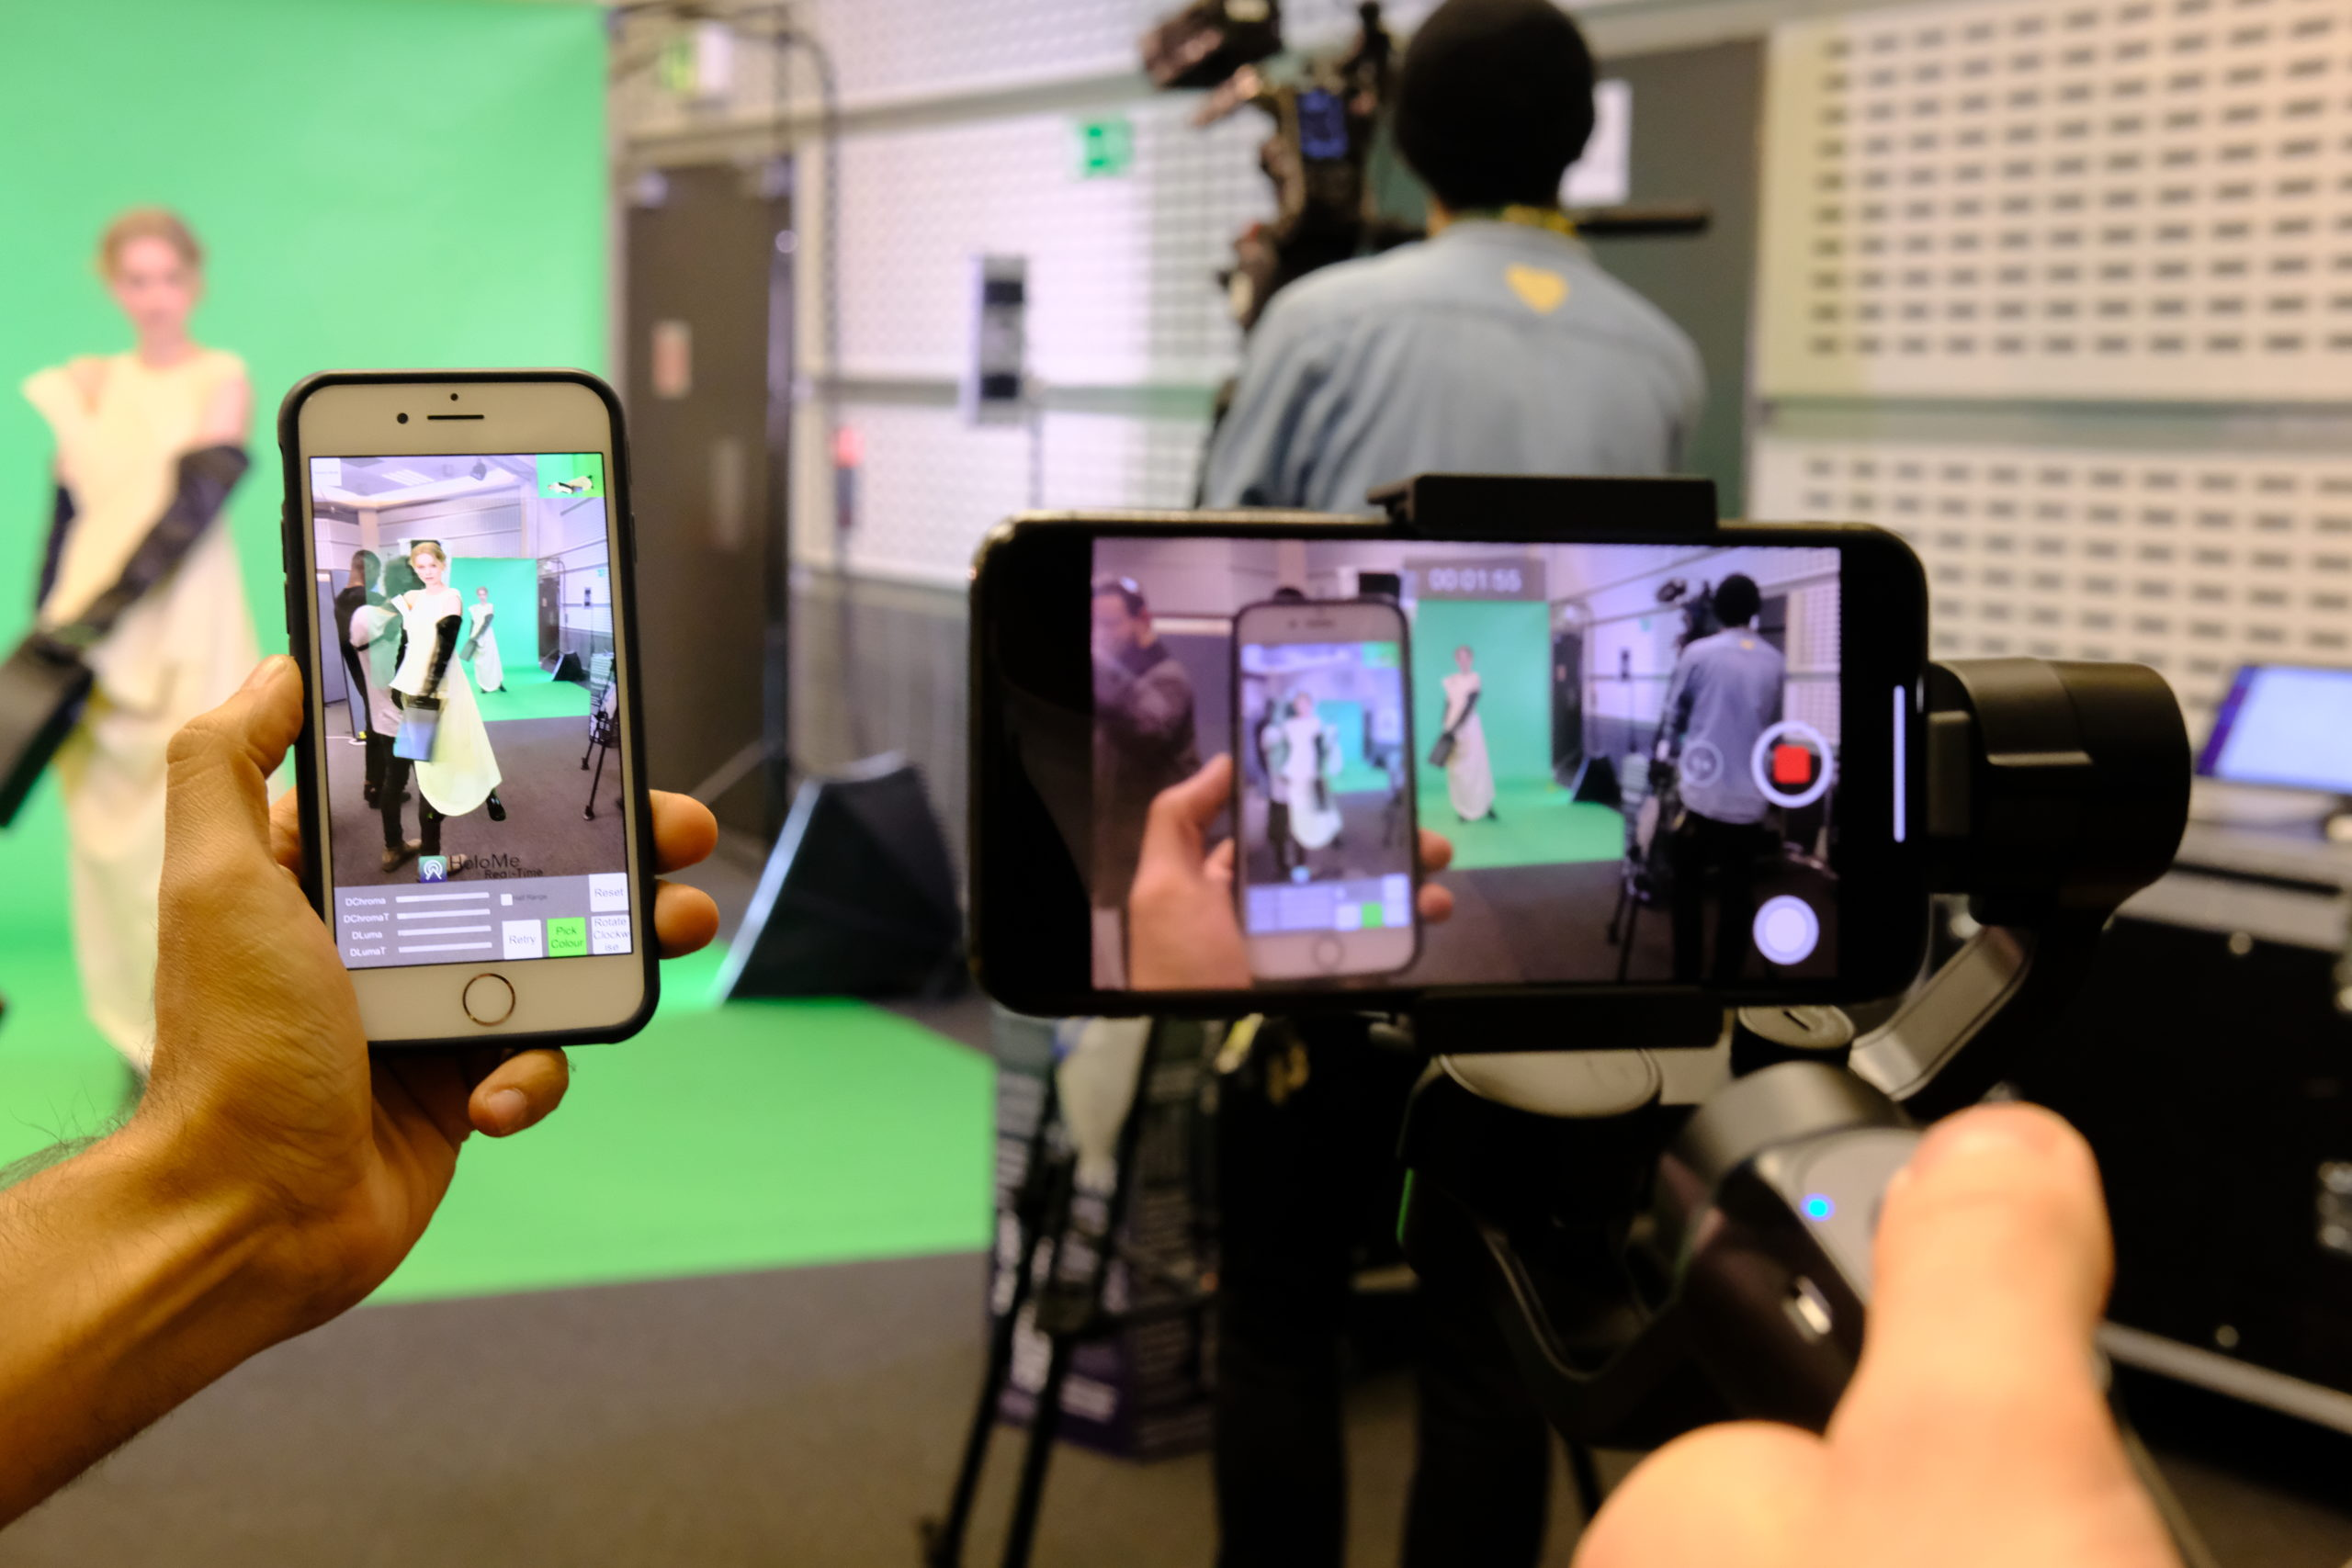 Image of phones taking pictures and video of a model on a green screen, Fashion Innovation Agency